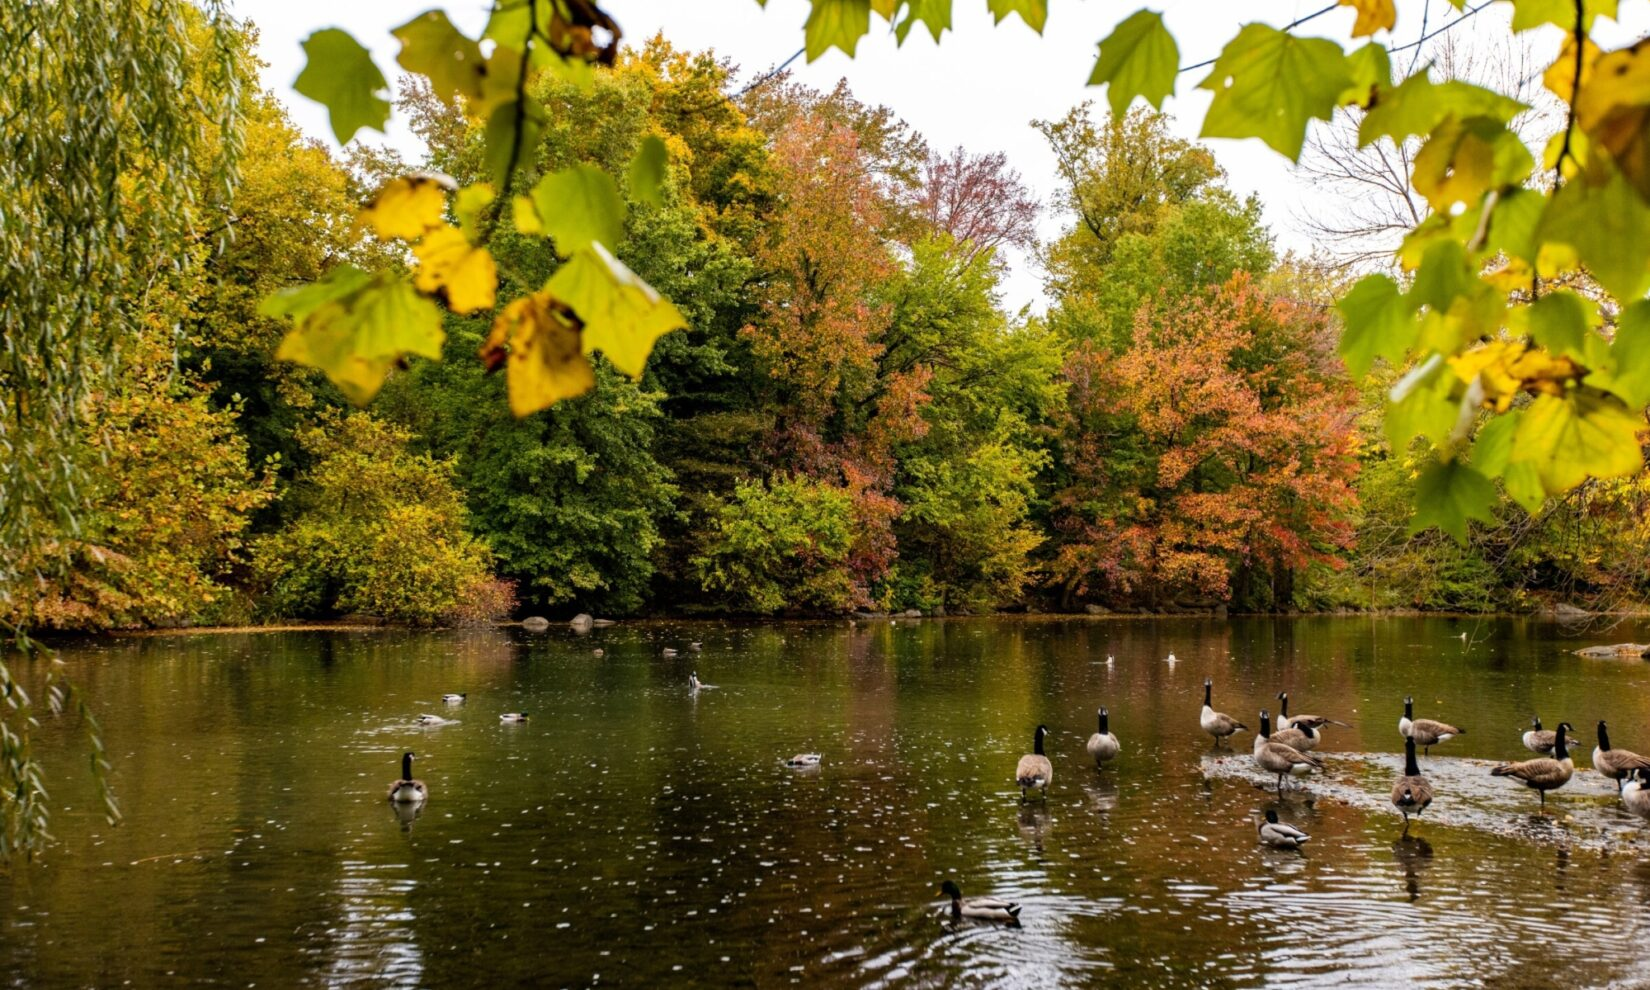 Ducks glide on the glassy surface of the Pool in autumn